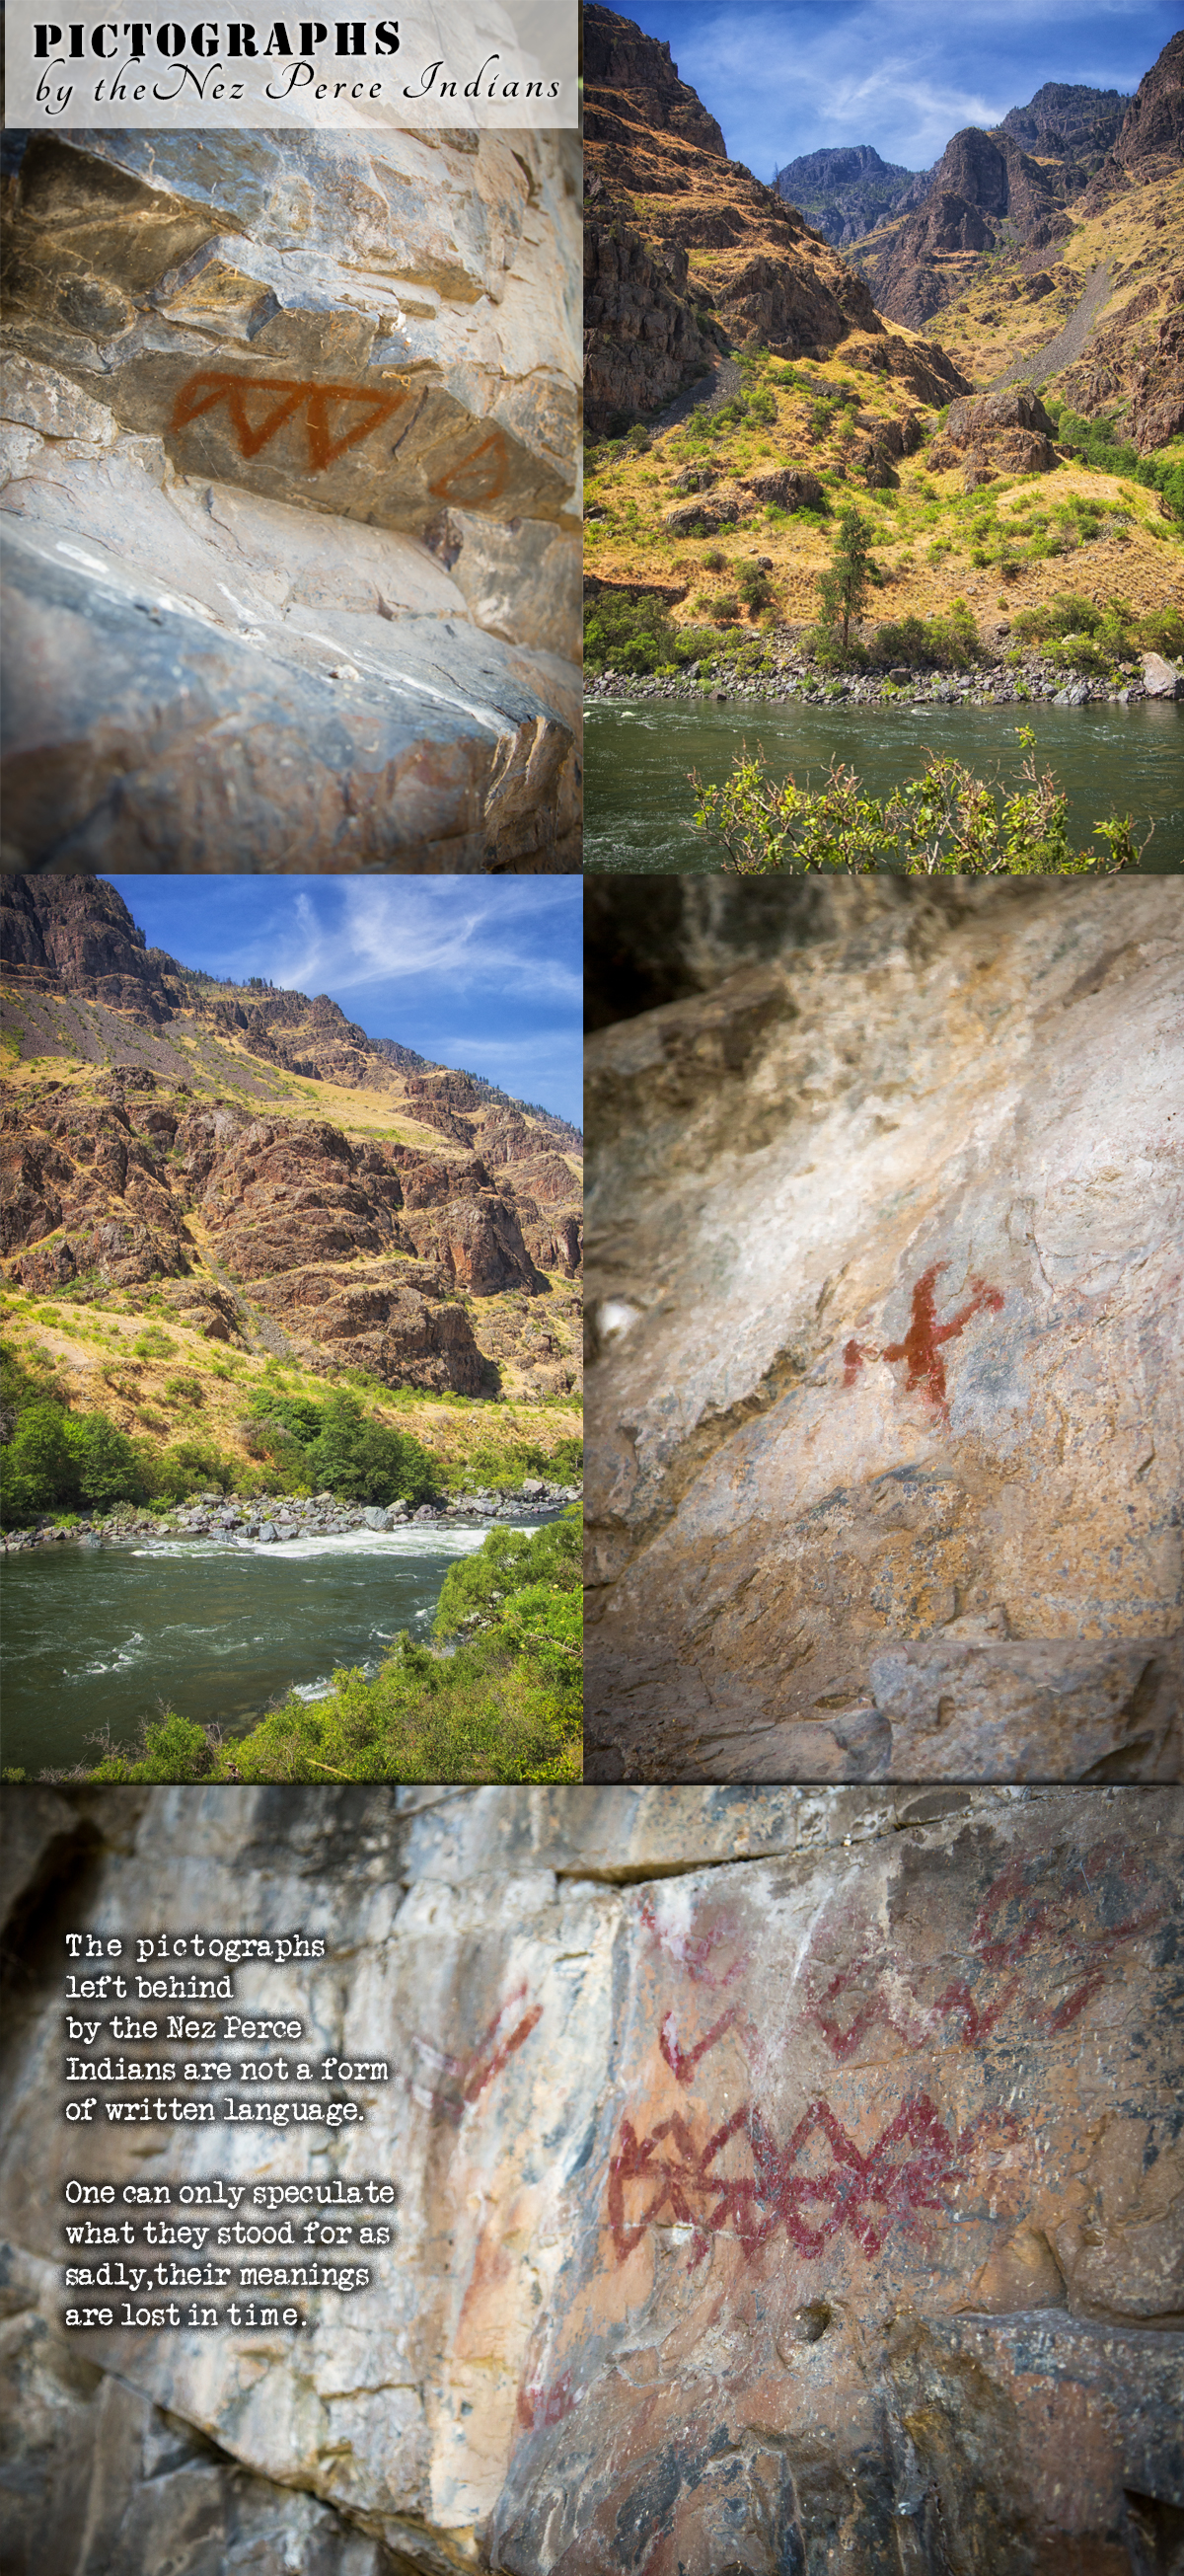 Nez Perce Indians Pictographs in Hells Canyon along the Snake River with Hells Canyon Raft and Kurt and Heidi Armacost via J5MM.com